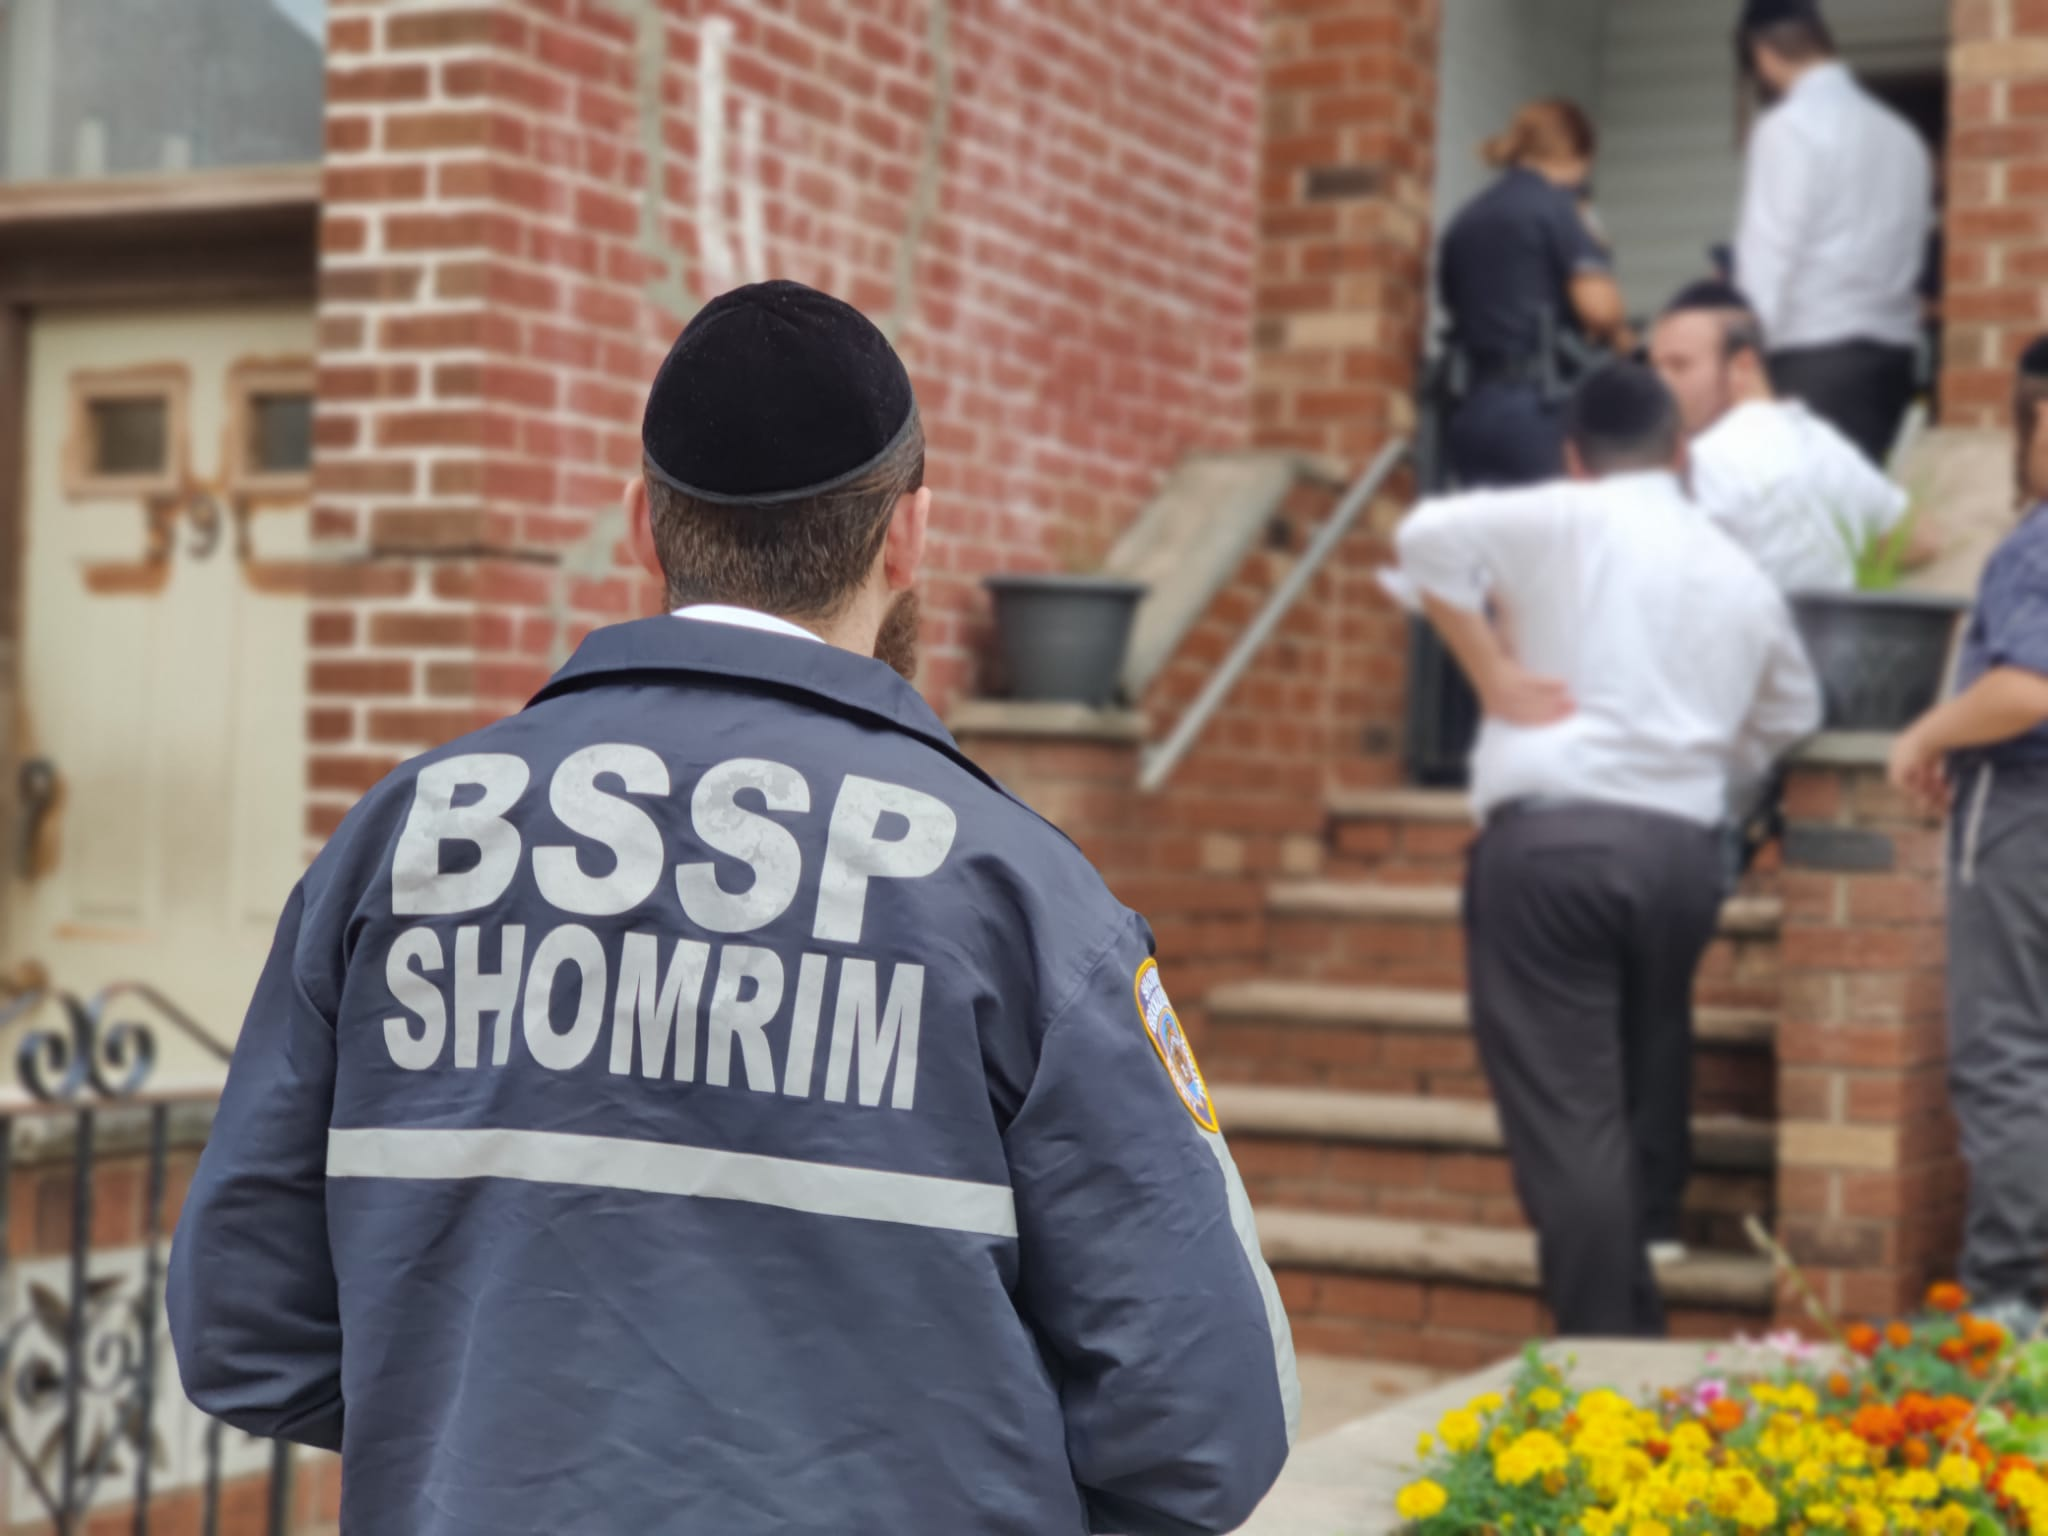 Young Jewish kid assaulted in Kensington, Brooklyn